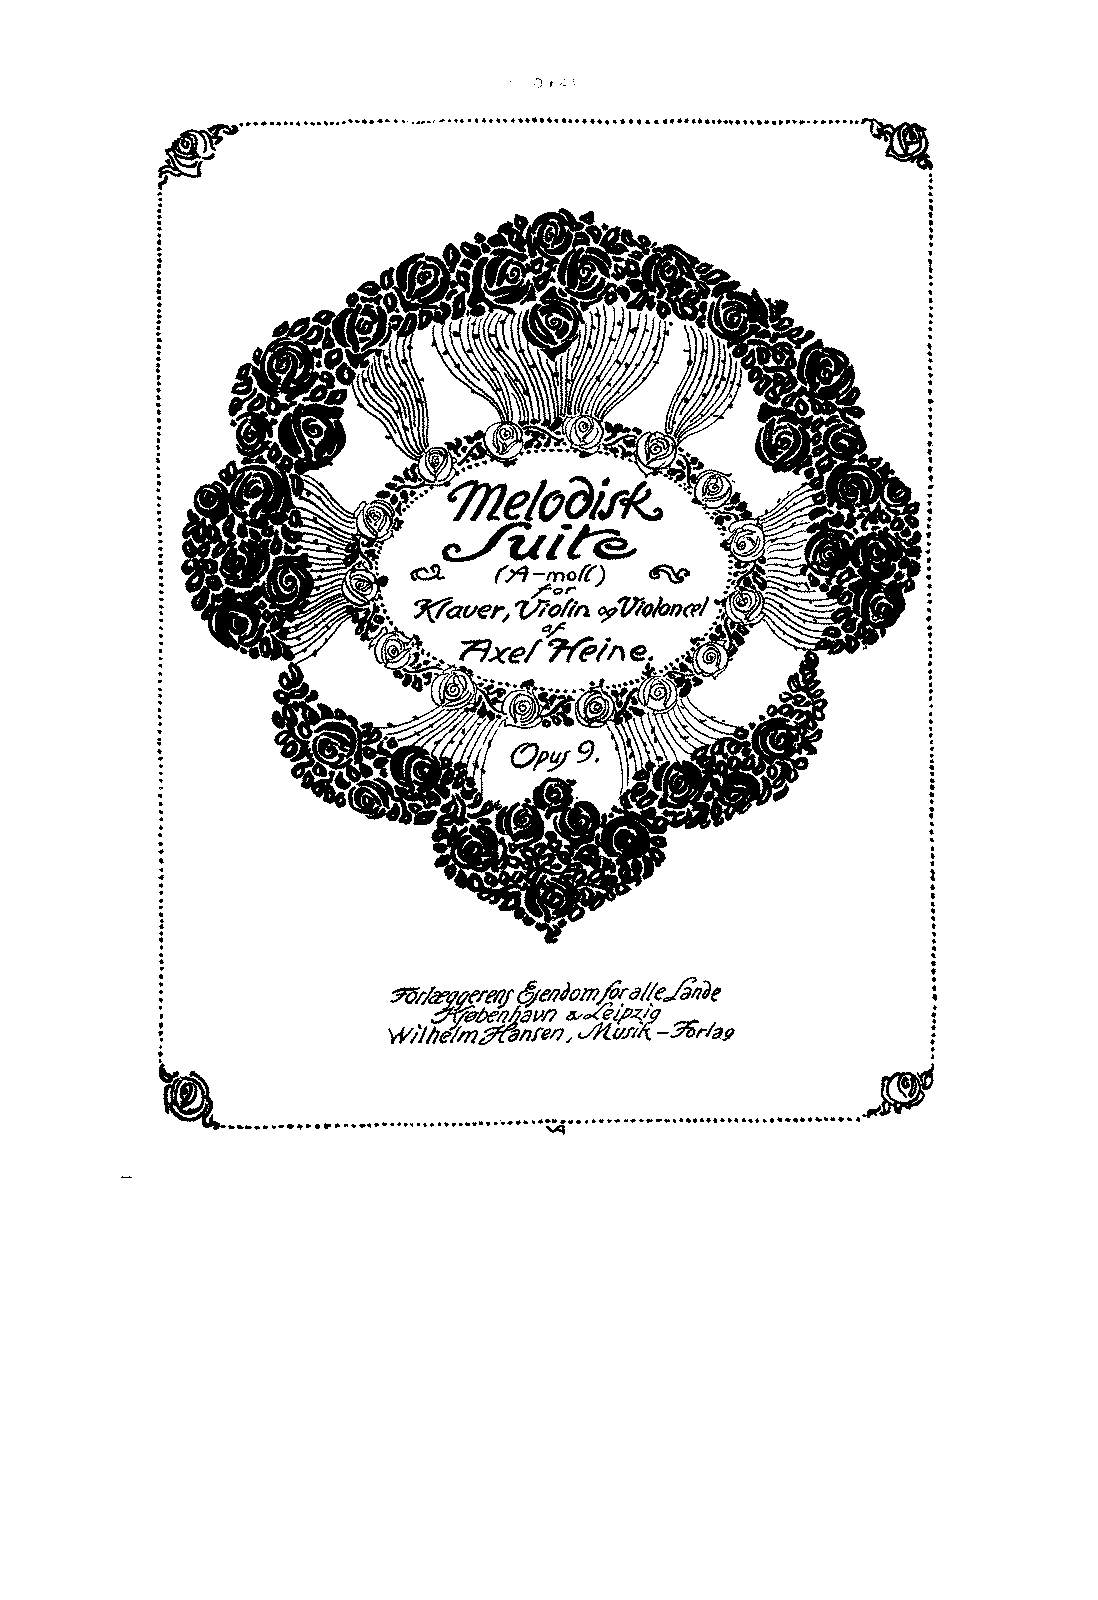 PMLP82291-Heine - Melodisk Suite in A for Piano Trio Op9 piano.pdf